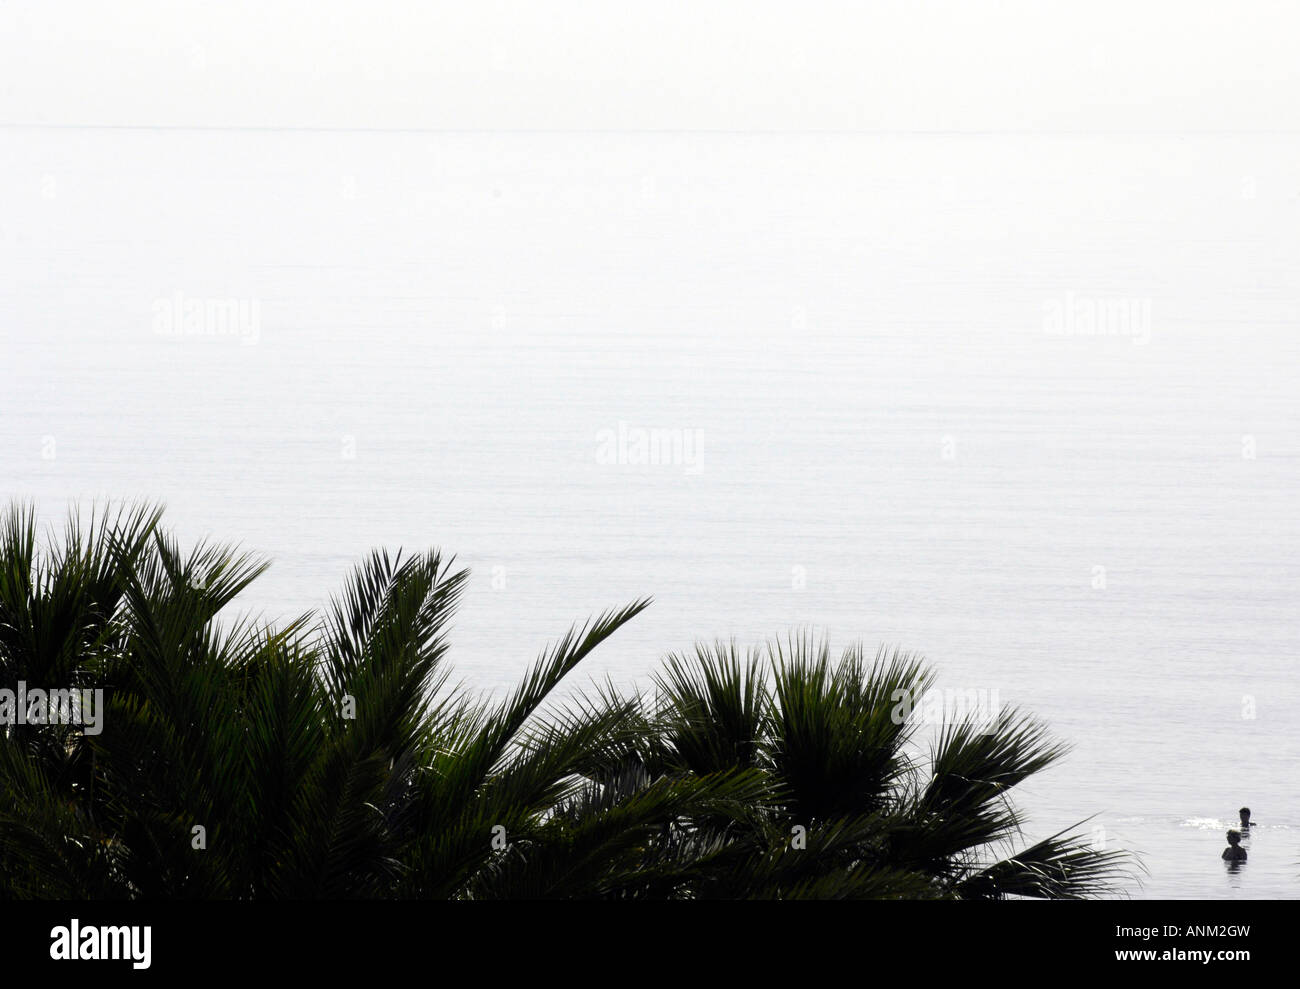 mediterranean sea two people figures palm trees highkey cyprus travel tourism landscape horizontal bright summer - Stock Image